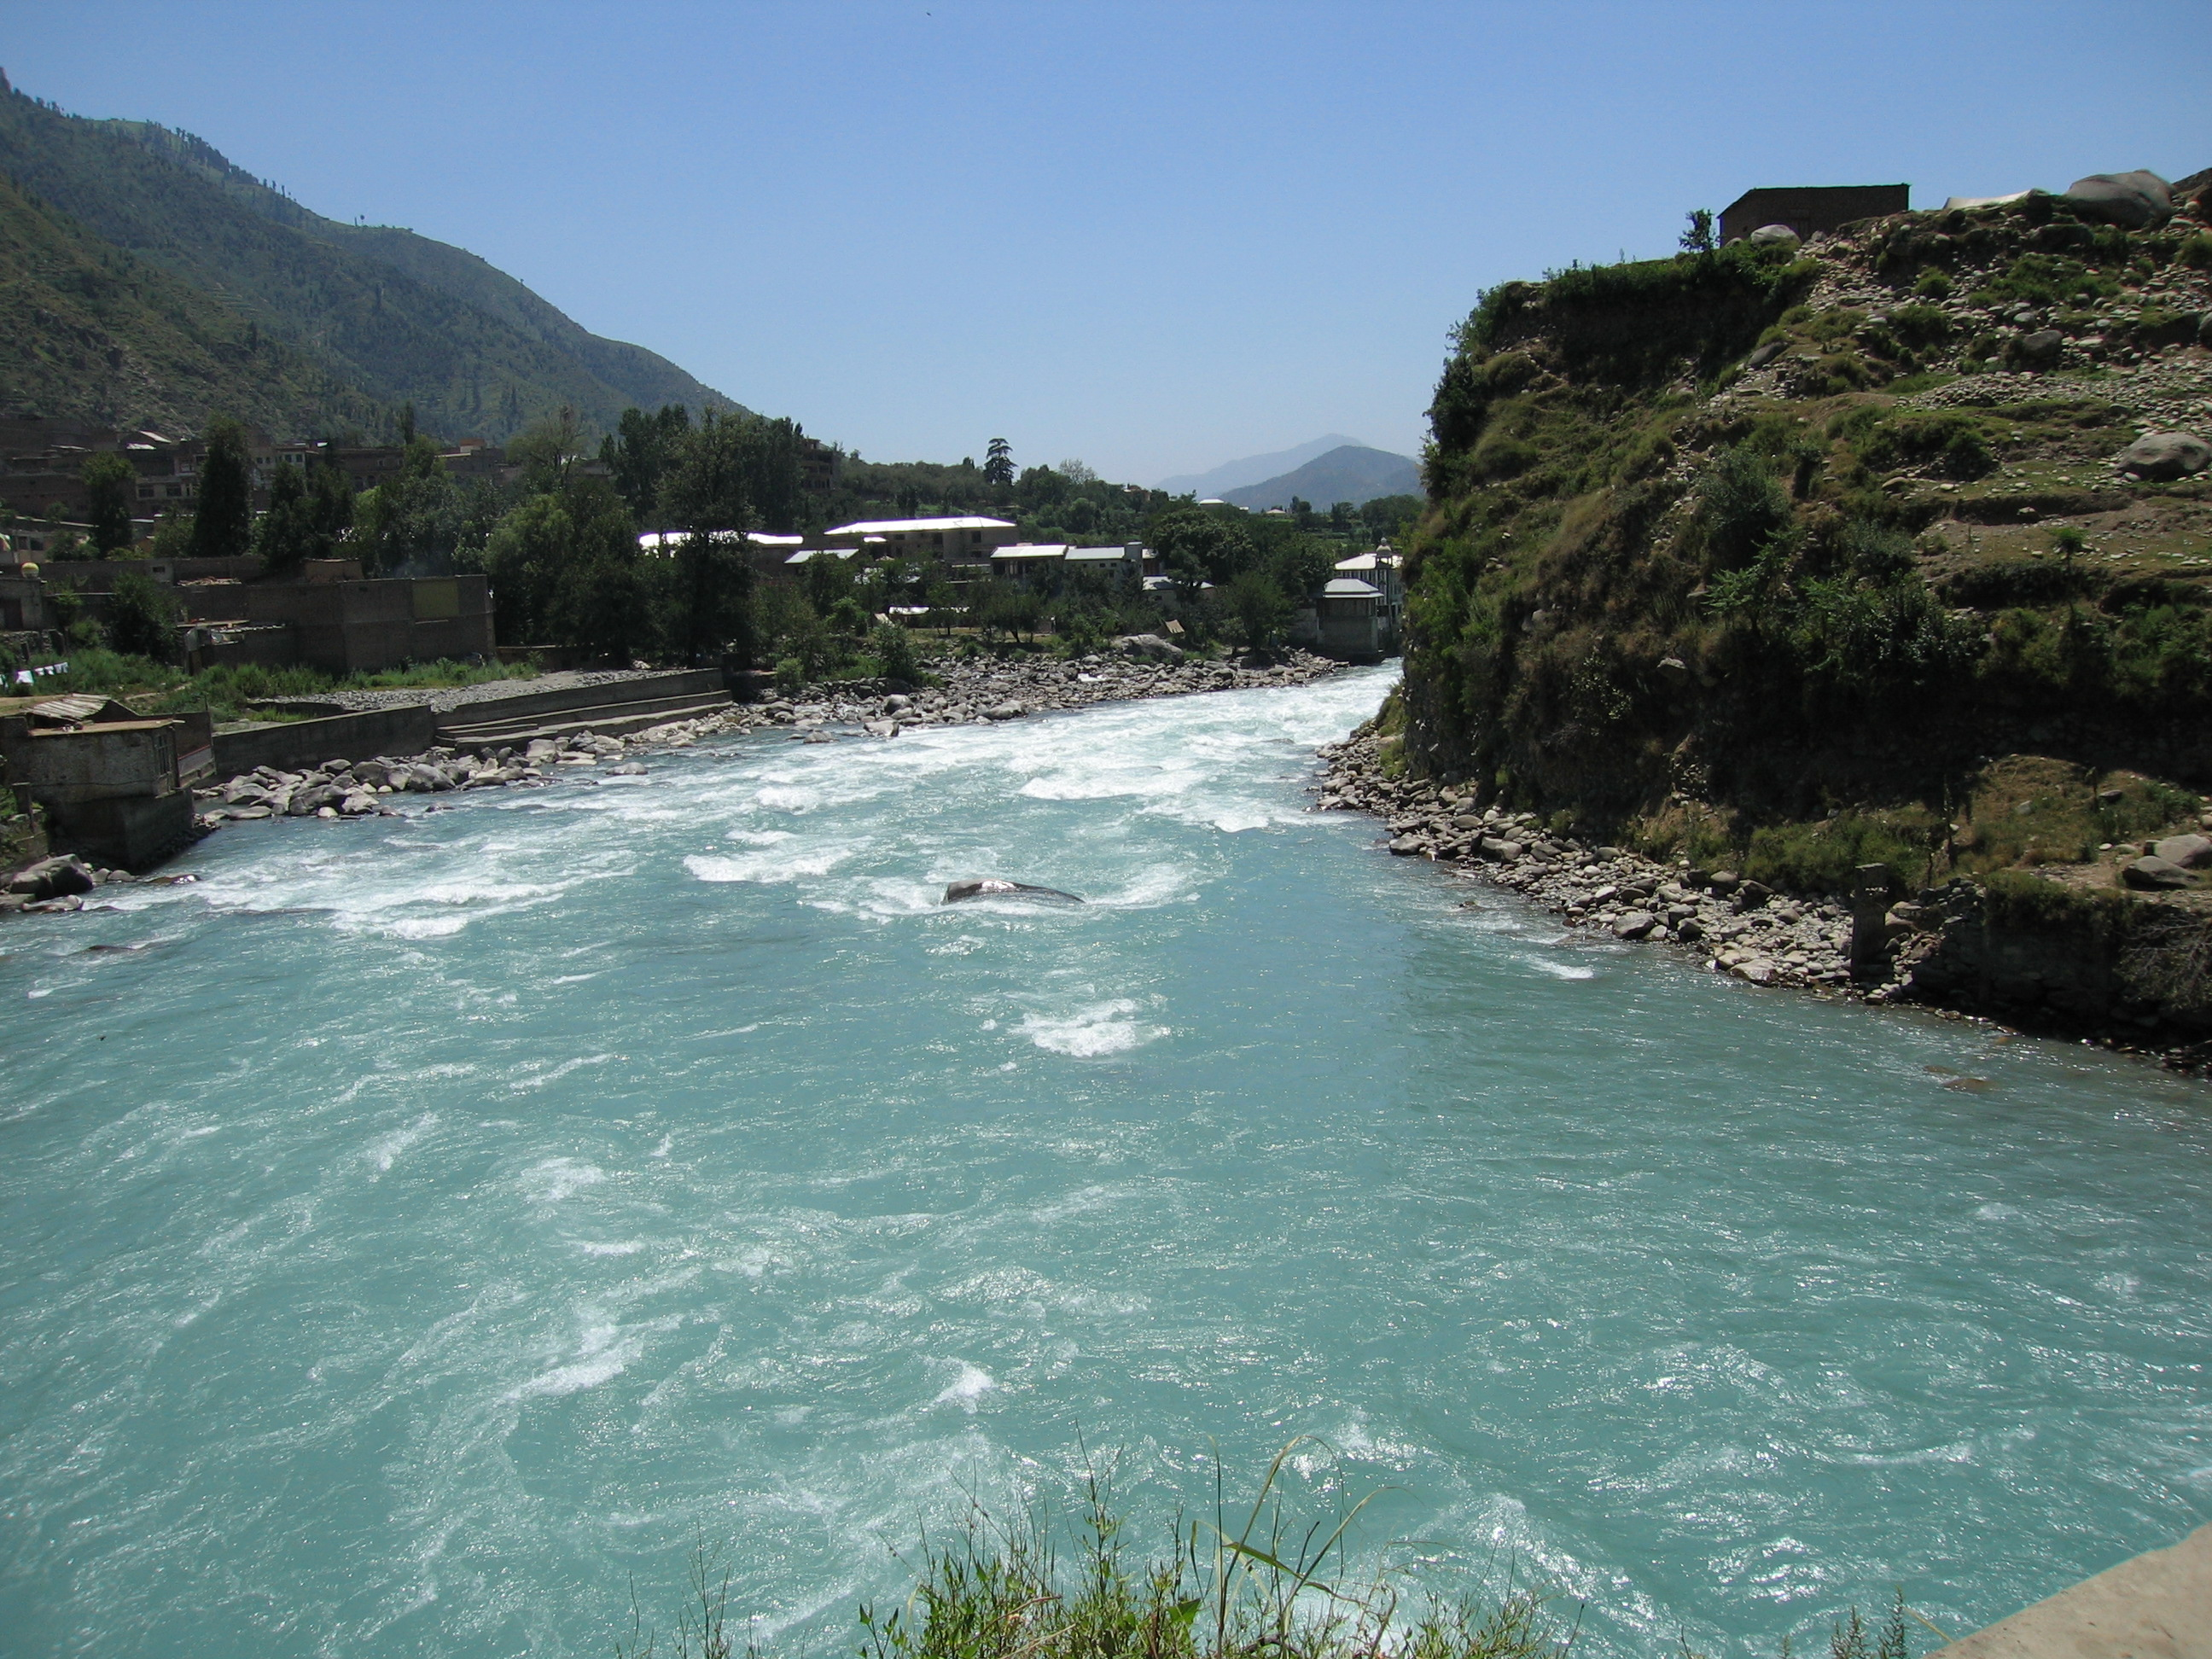 File:Swat River Pakistan.JPG  Wikimedia Commons